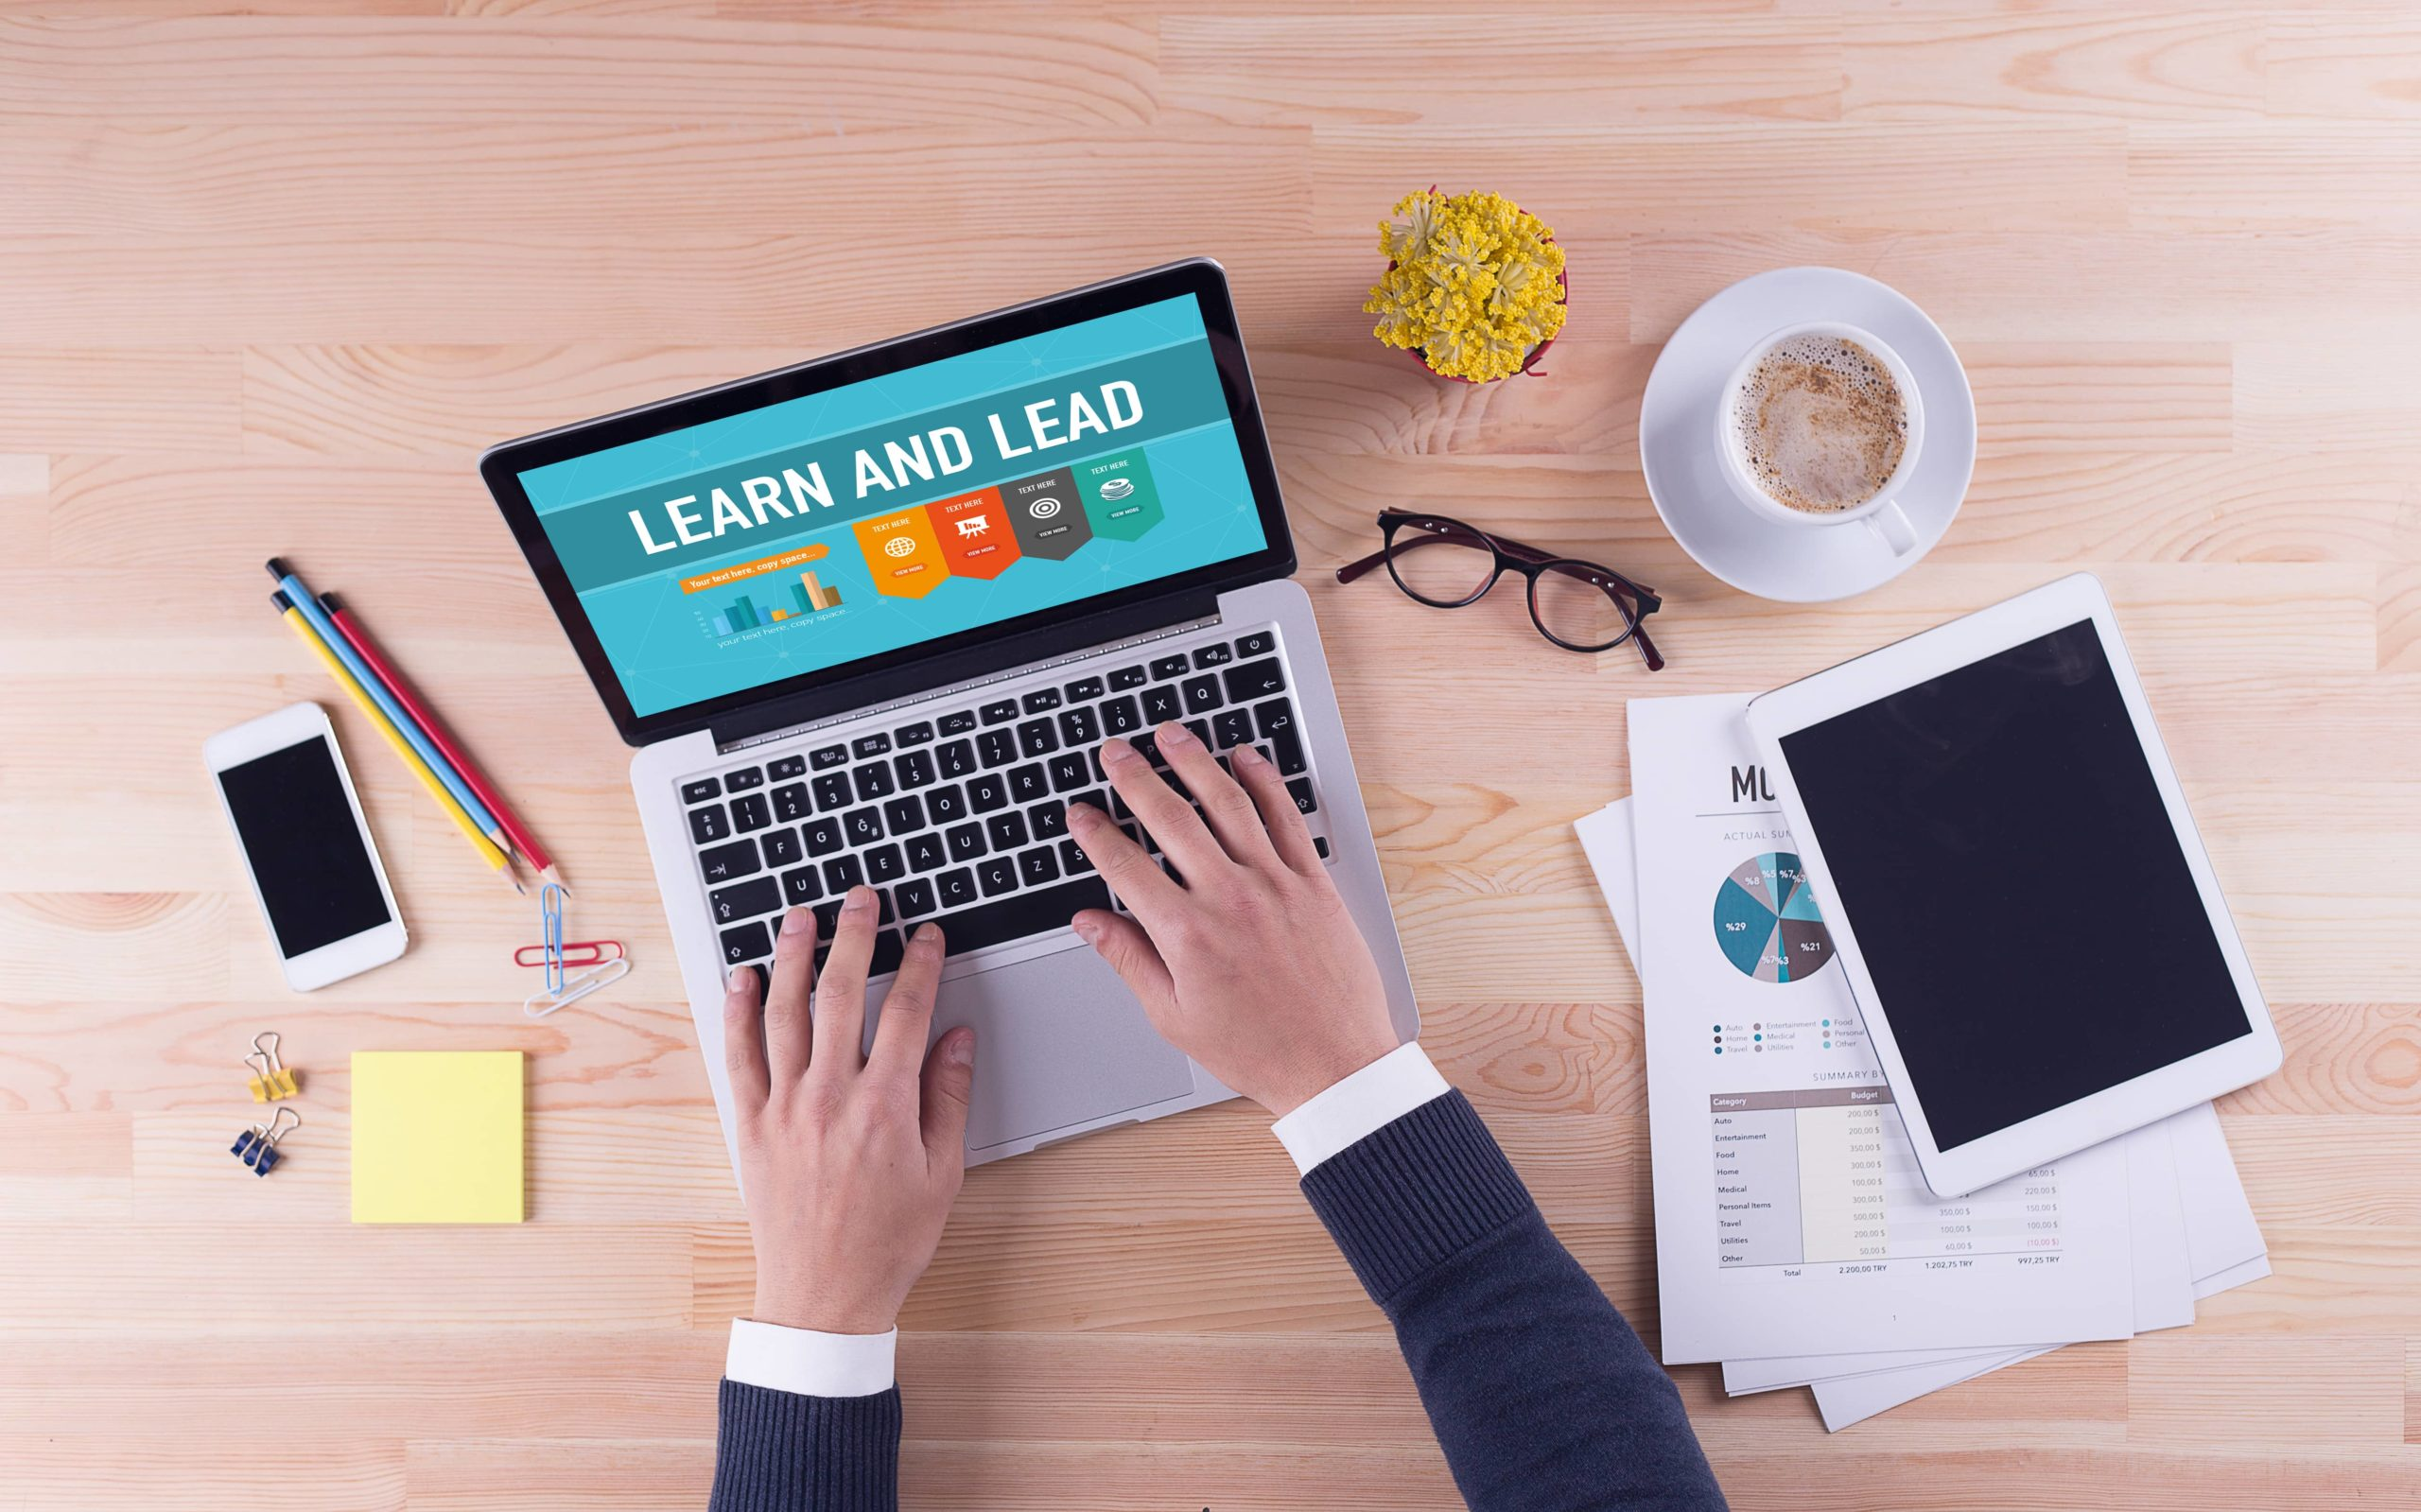 Timeless Skills for Assistants to Learn and Lead